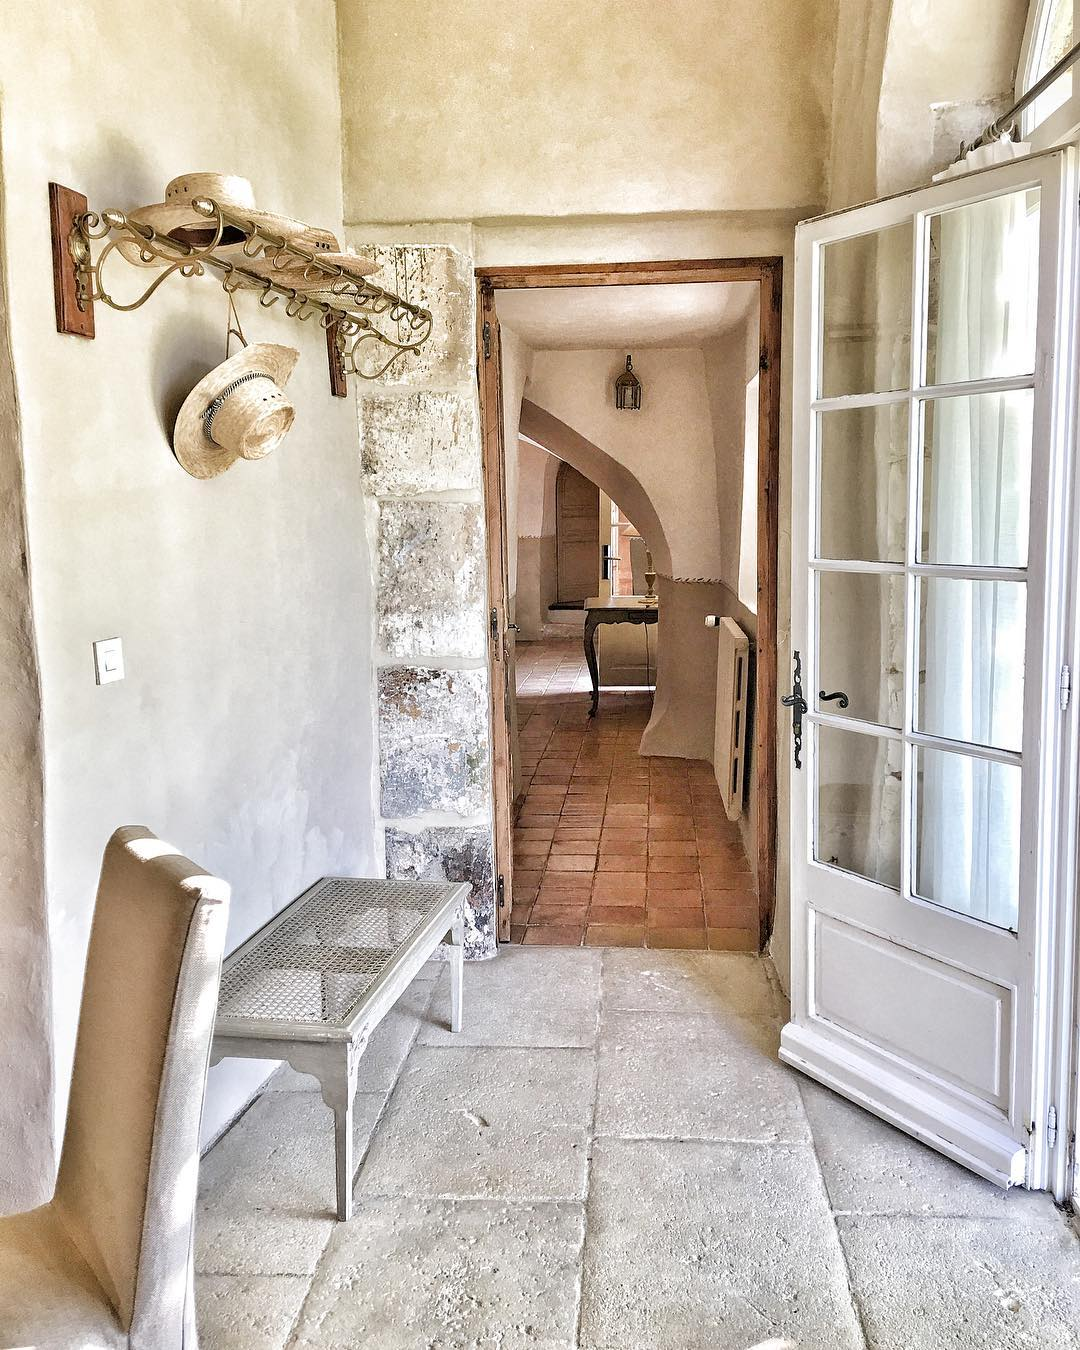 French farmhouse in France entry with coat rack and charming rustic decor. Photo by Vivi et Margot.